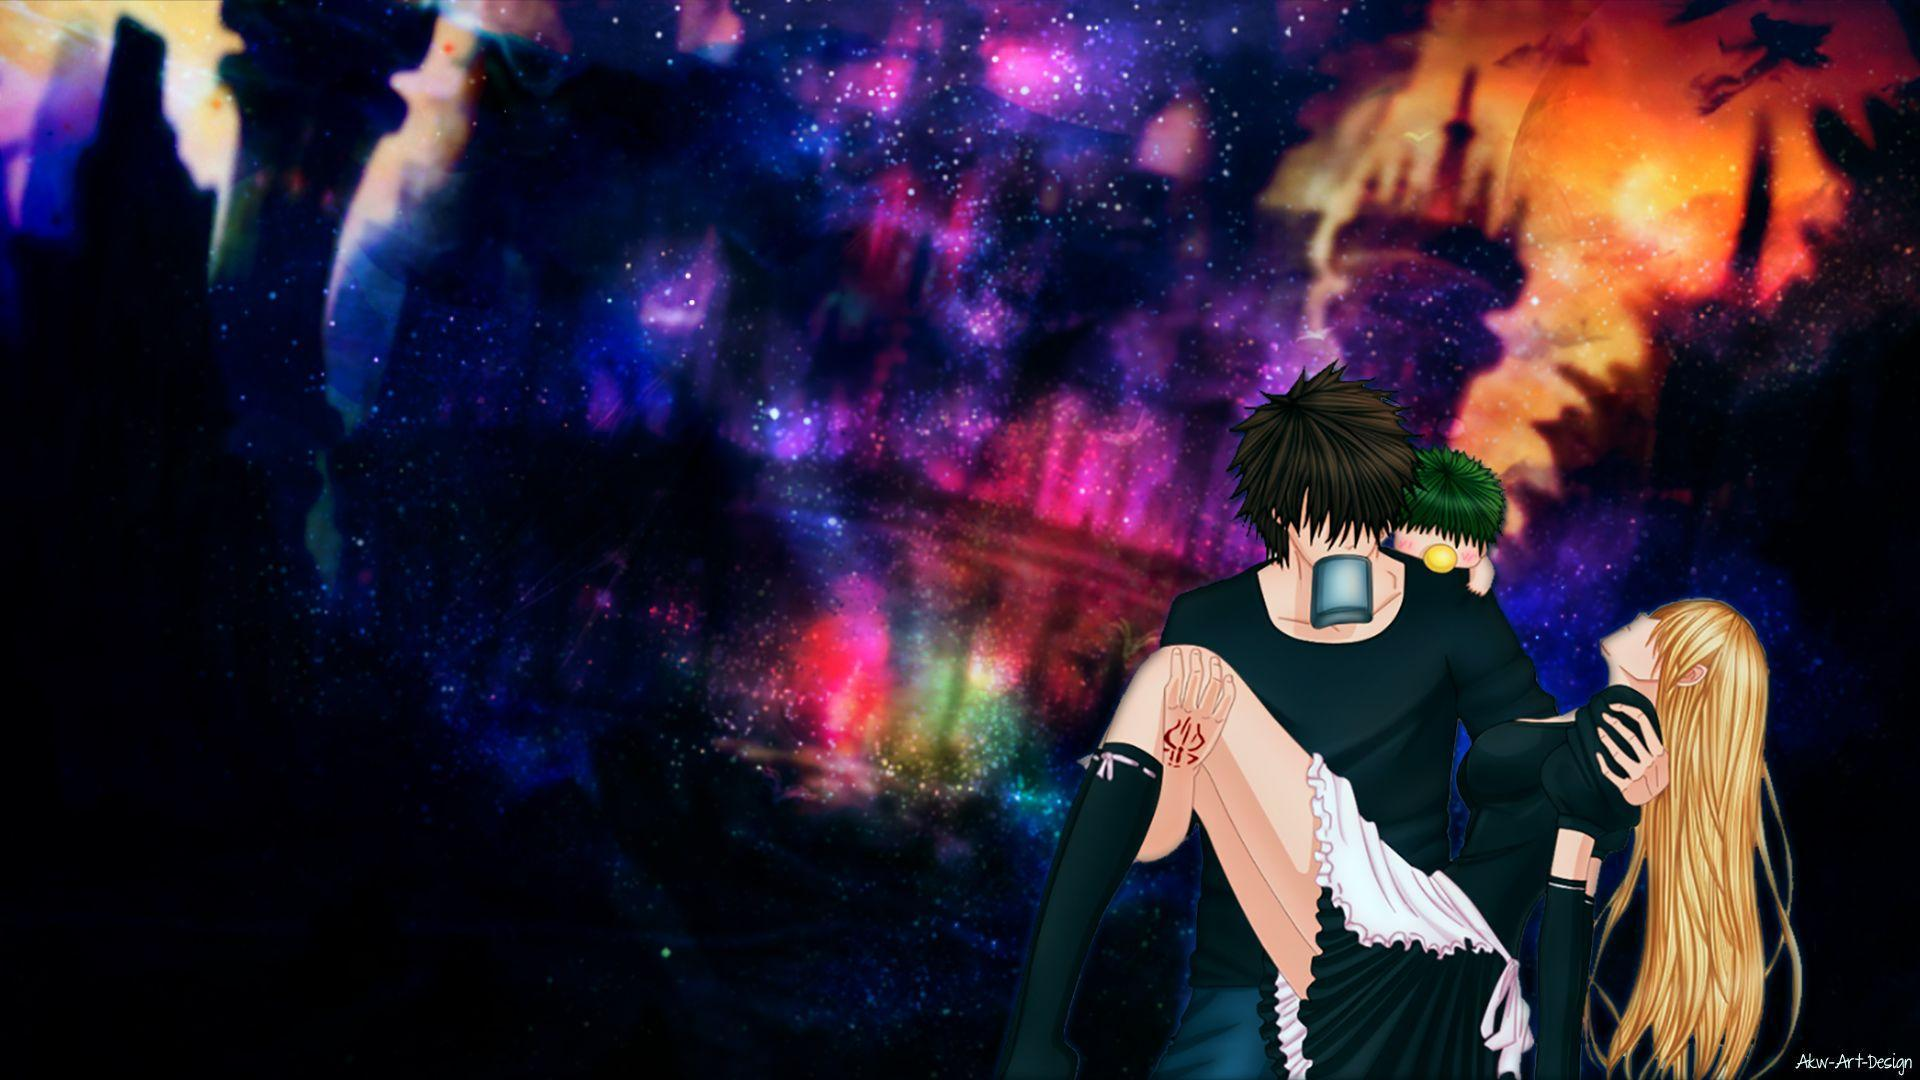 Beelzebub anime images and wallpapers - image left to right slider ...